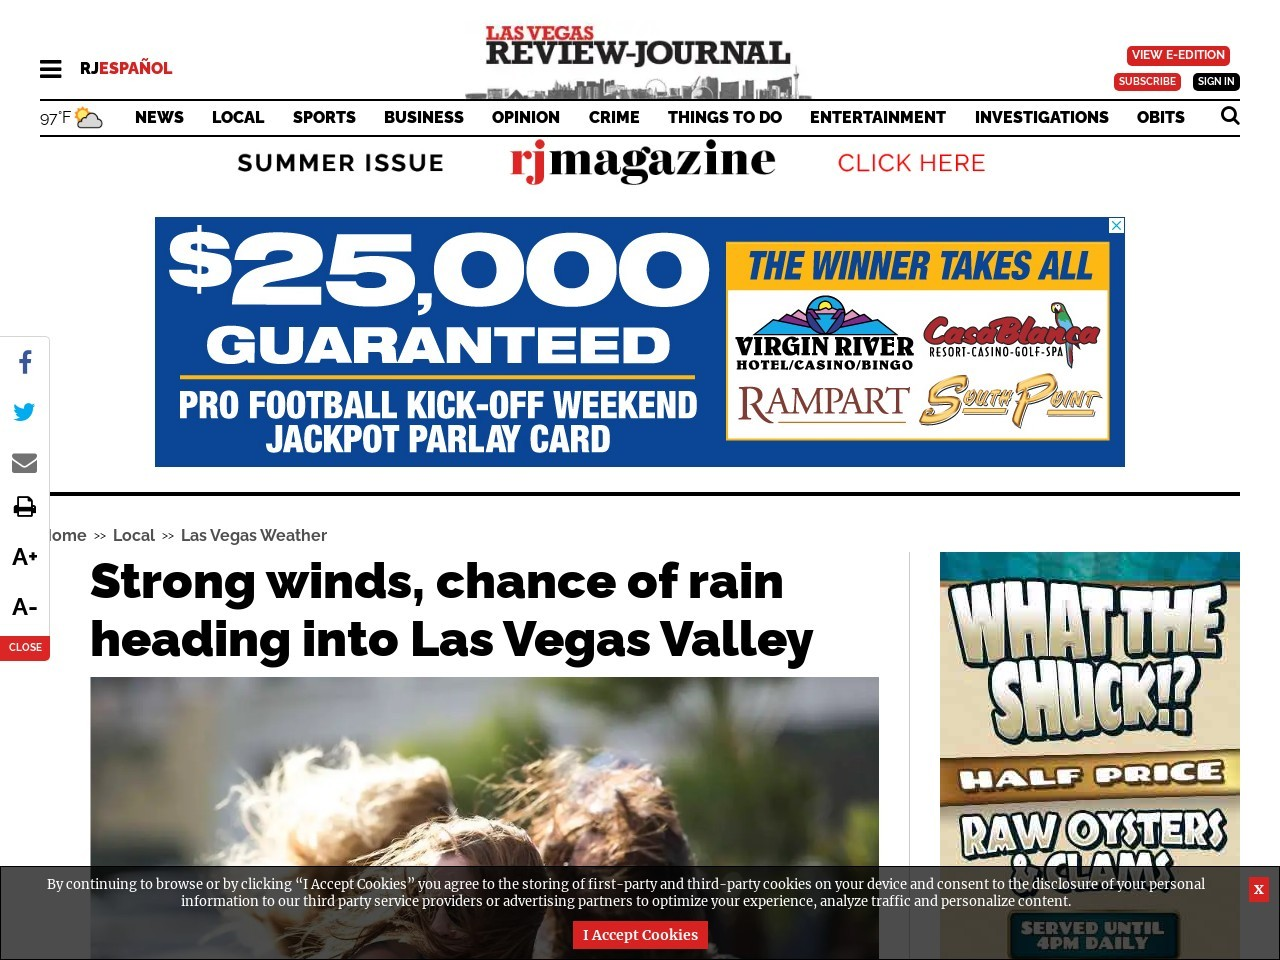 Strong winds, chance of rain heading into Las Vegas Valley